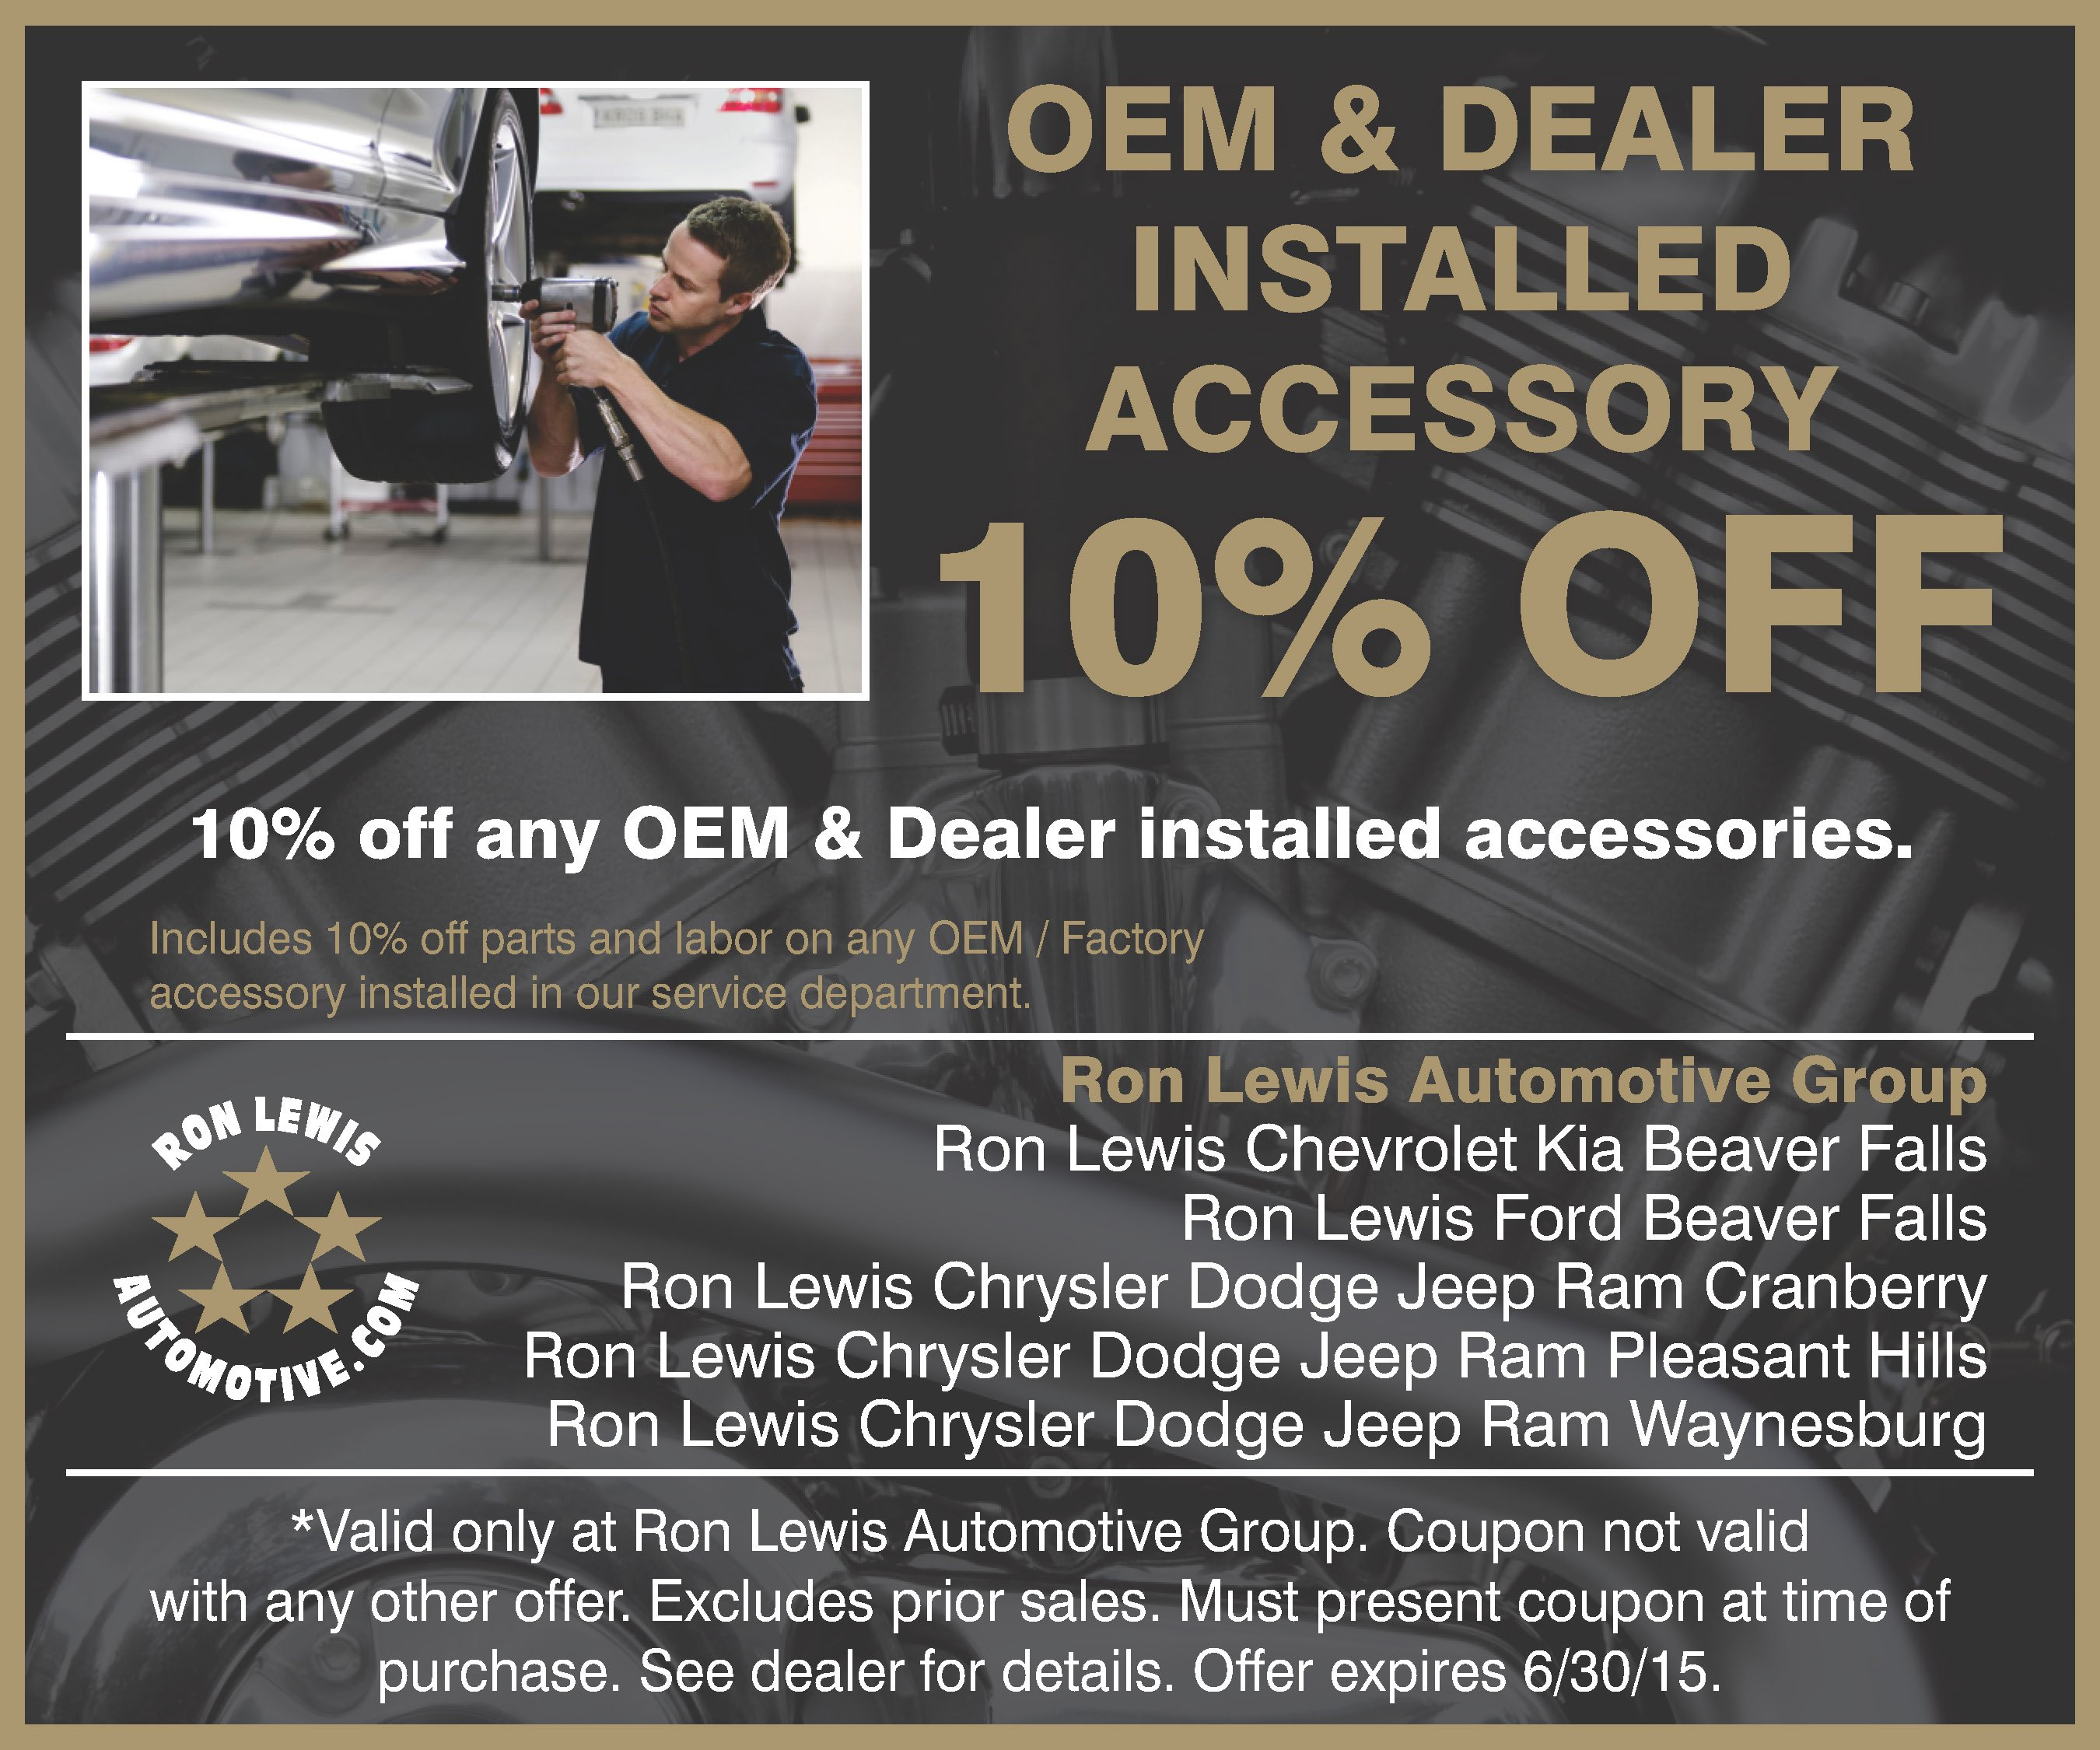 ron lewis ford new ford dealership in beaver falls pa  accessory specials